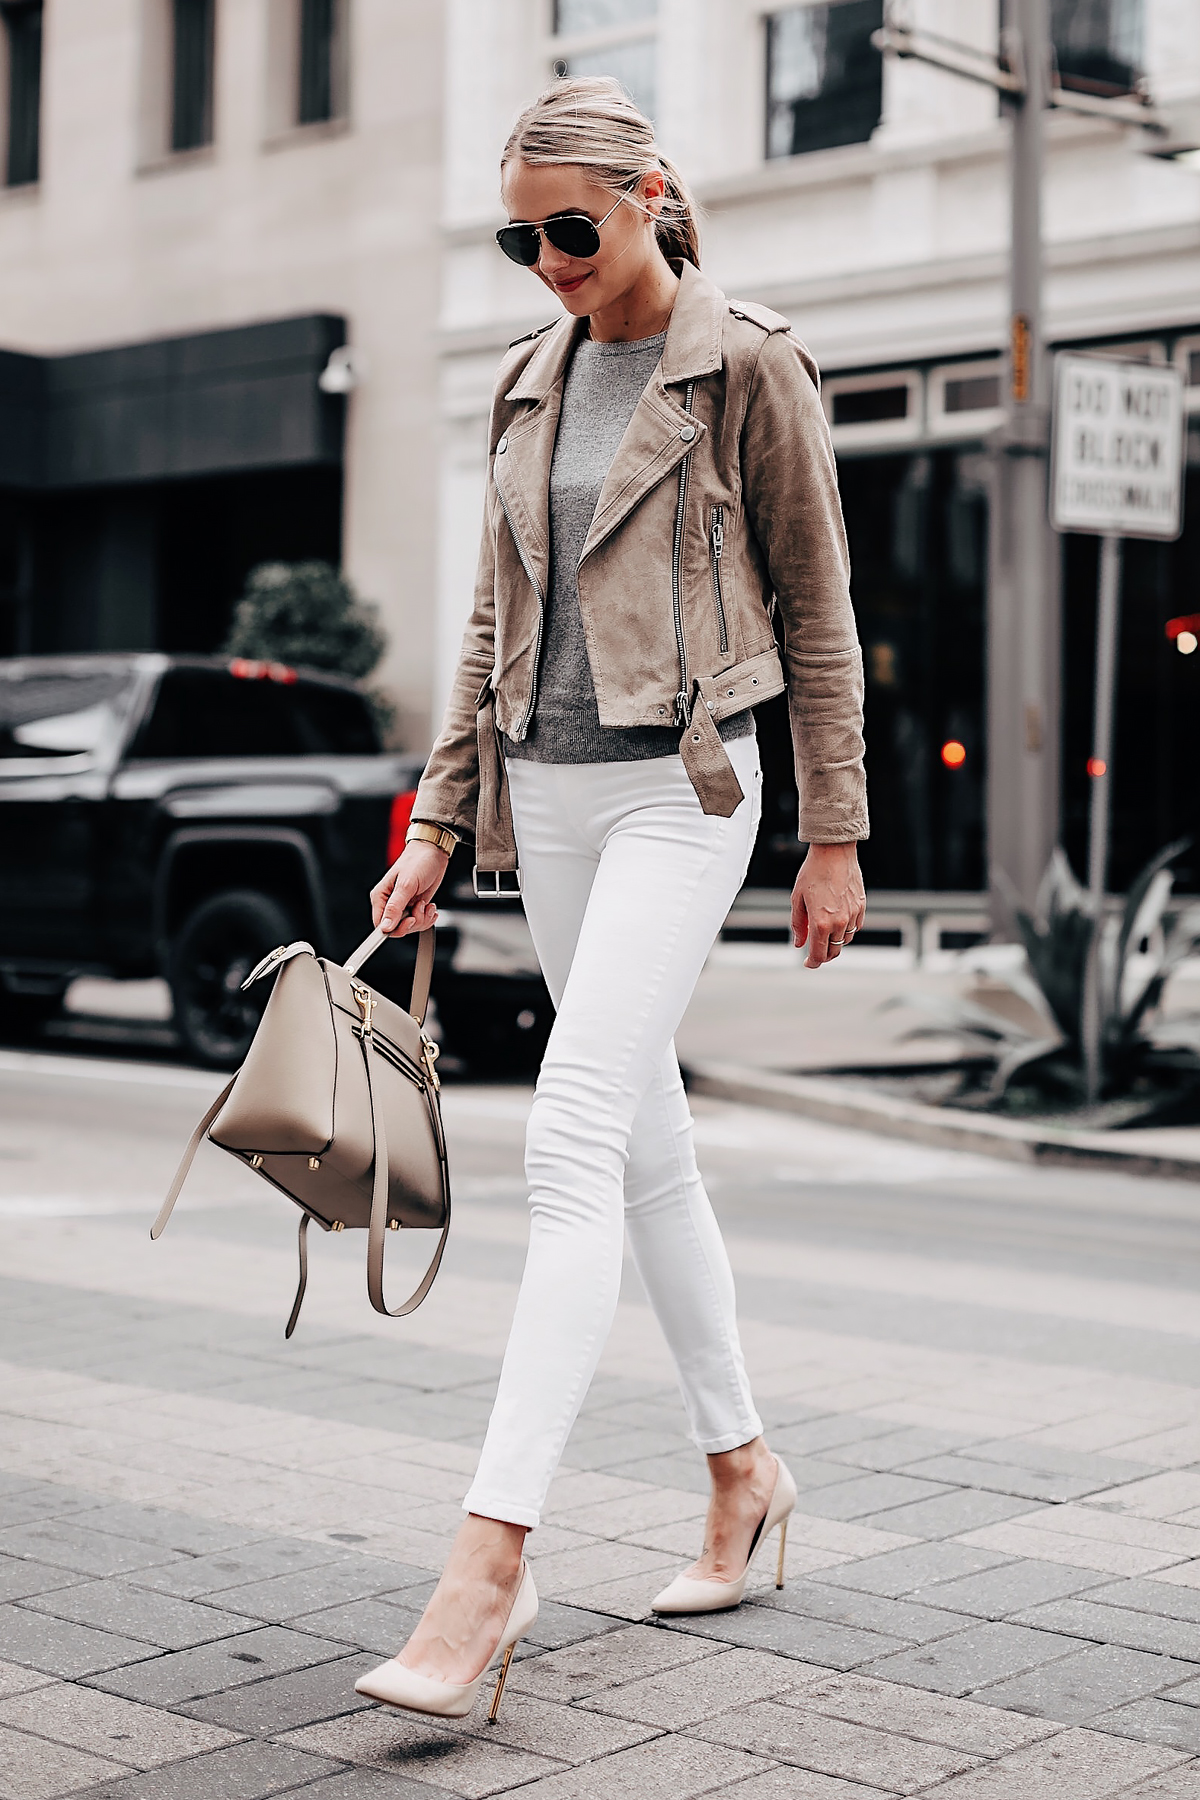 Fashion Jackson Wearing Blanknyc Tan Sude Moto Jacket Grey Sweater White Skinny Jeans Nude Pumps